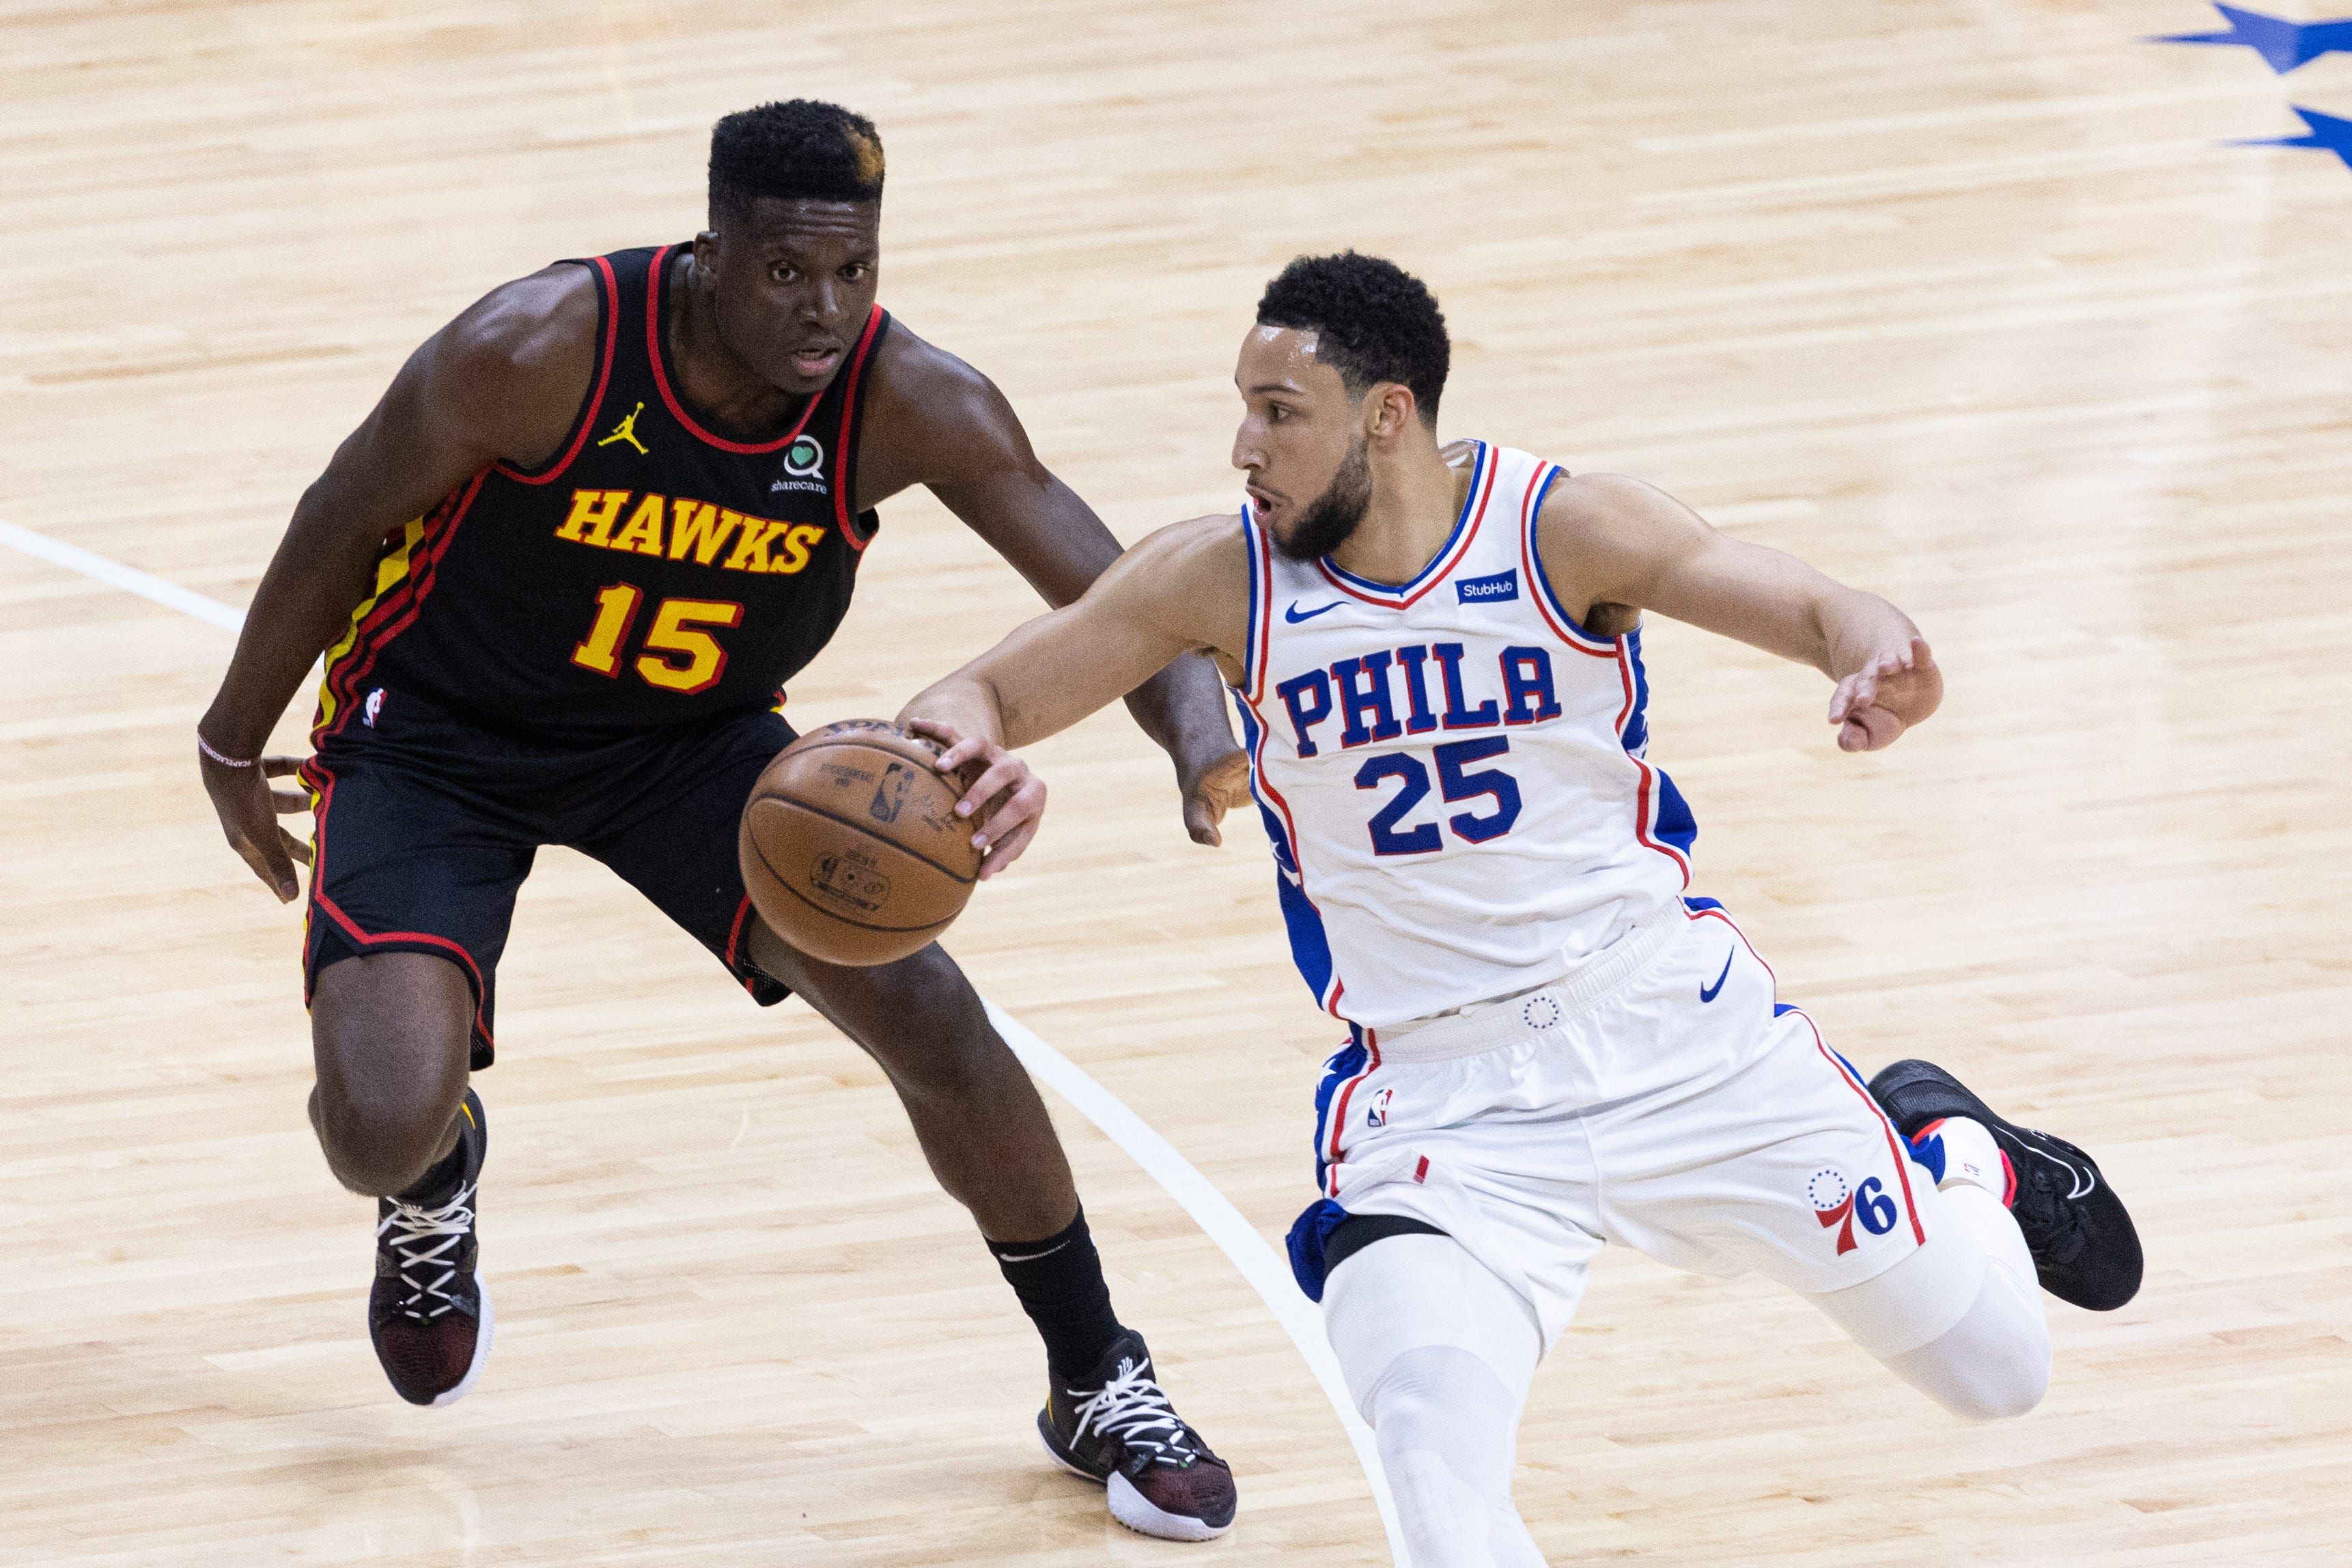 Opinion: 76ers, Ben Simmons enter long offseason of discontent after NBA playoff ouster vs. Hawks